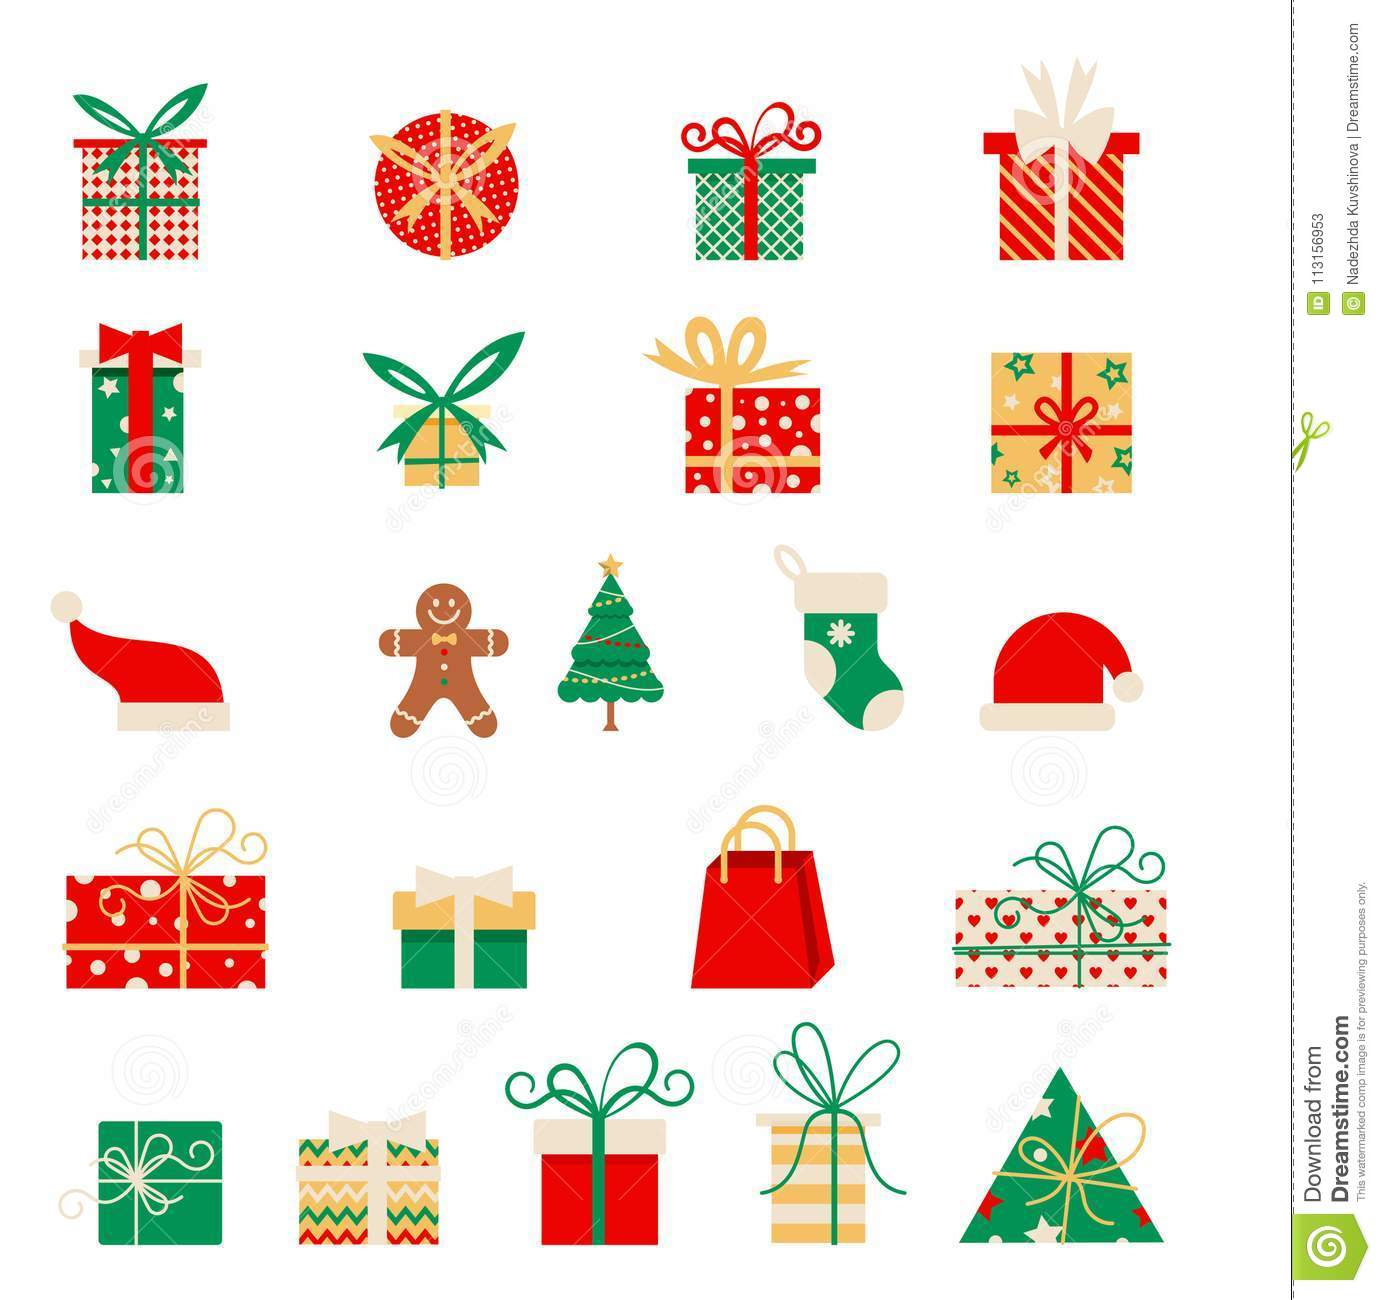 new year icons set of christmas elements in a flat style vector cartoon flat design stock vector illustration of ornament decoration 113156953 https www dreamstime com new year icons set christmas elements flat style vector cartoon flat design vector set different gift boxes new year image113156953